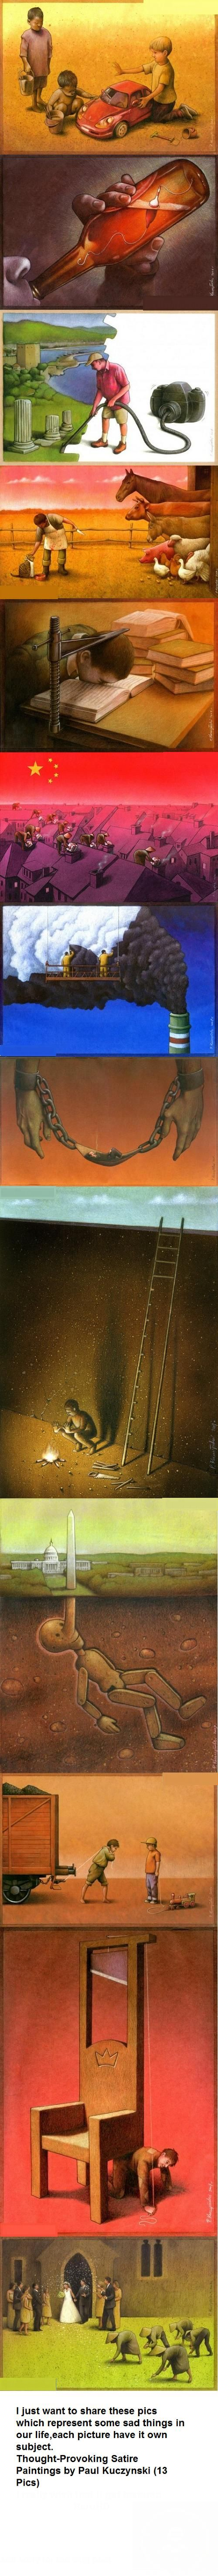 Thought-provoking art by Paul Kuczynski